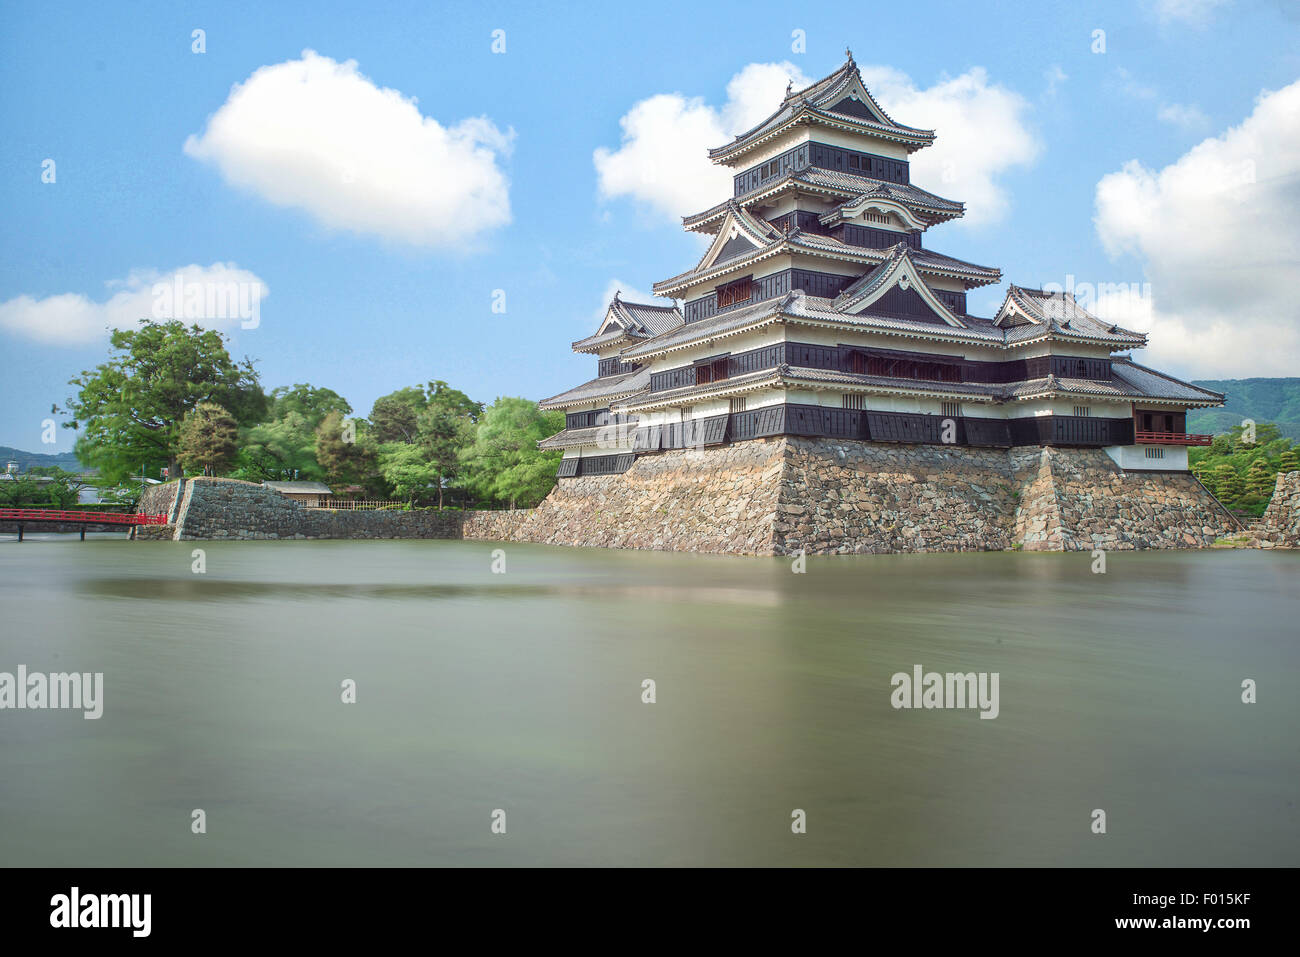 Matsumoto castle in Matsumoto city,Nagono, Japan - Stock Image